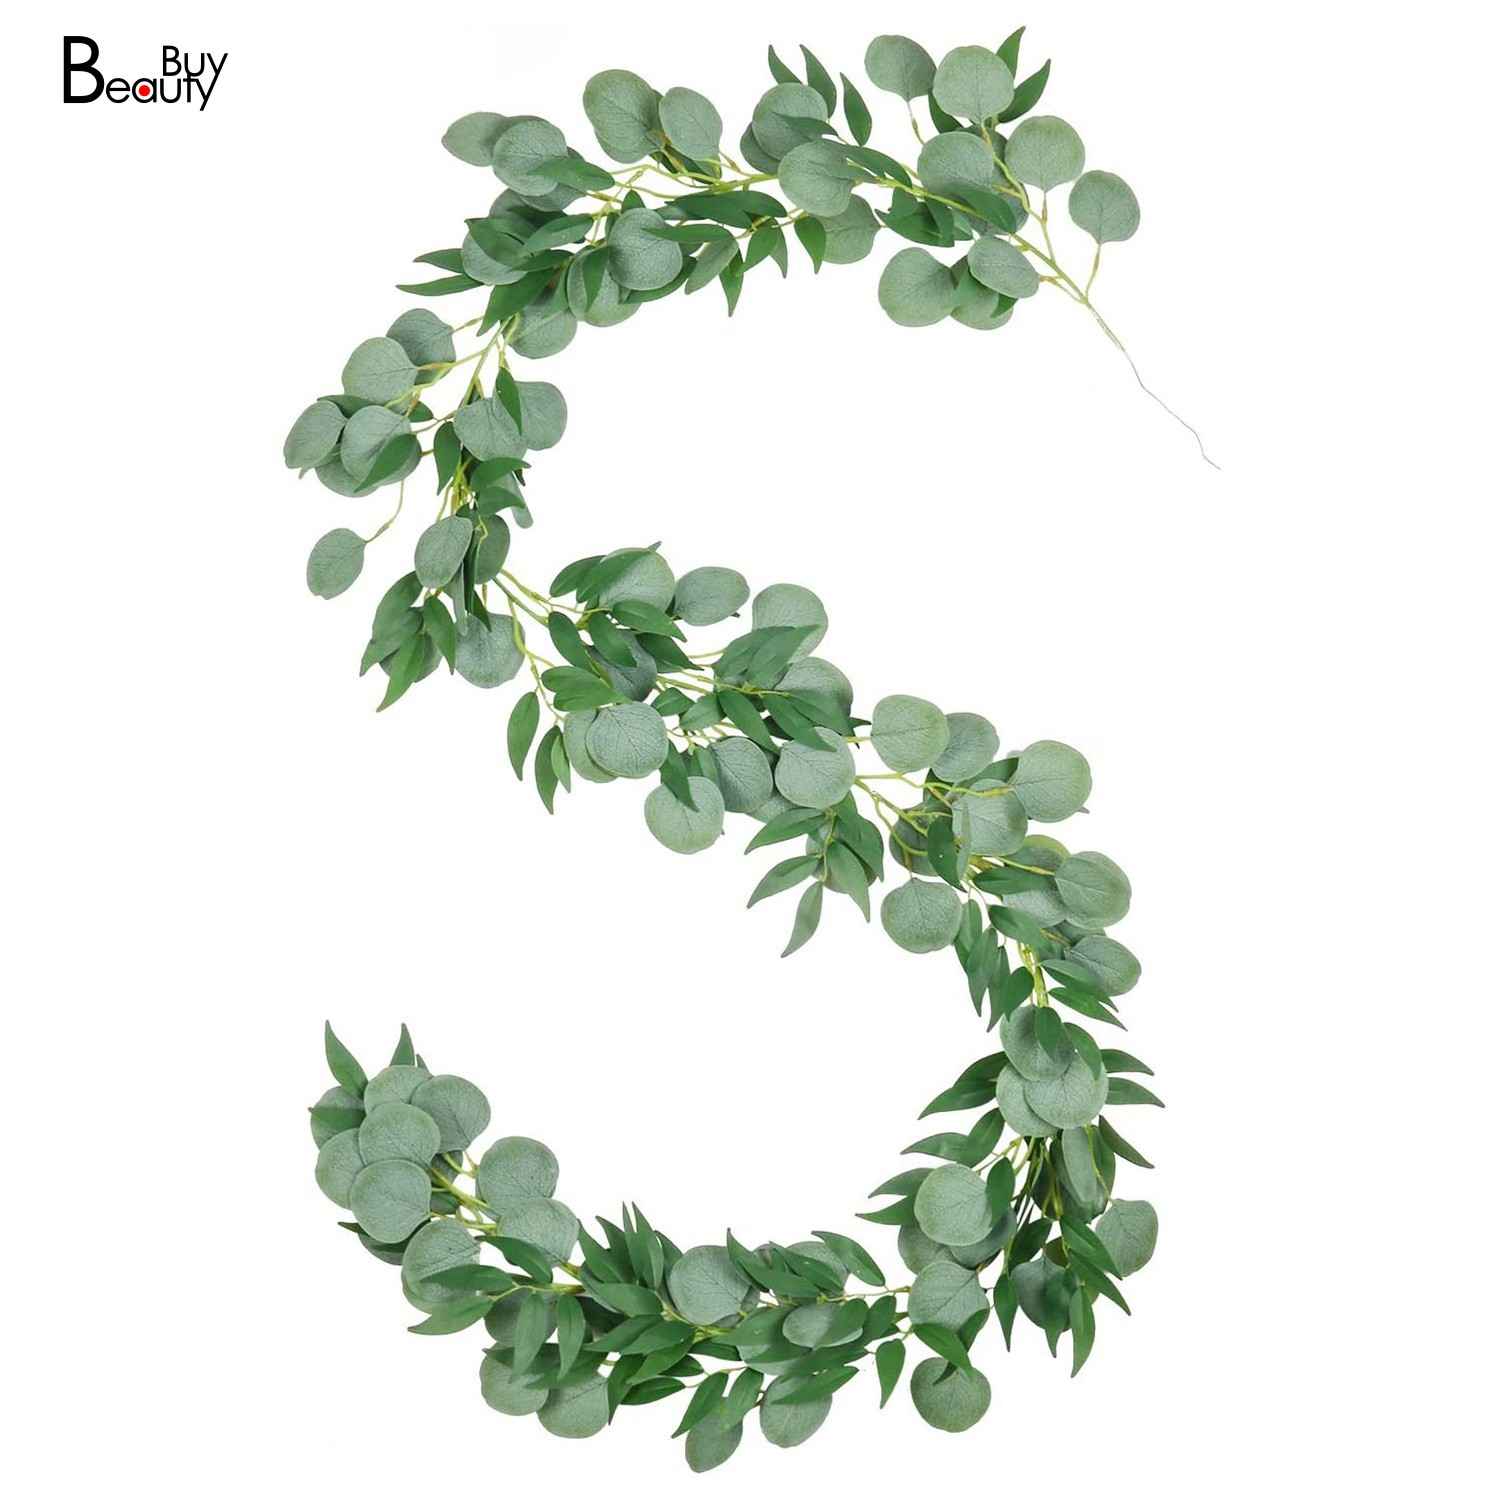 Beautybuy 6 56ft Artificial Silver Dollar Eucalyptus And Willow Leaves Vines Hanging Leaf Garland For Garden Wall Decoration Shopee Indonesia